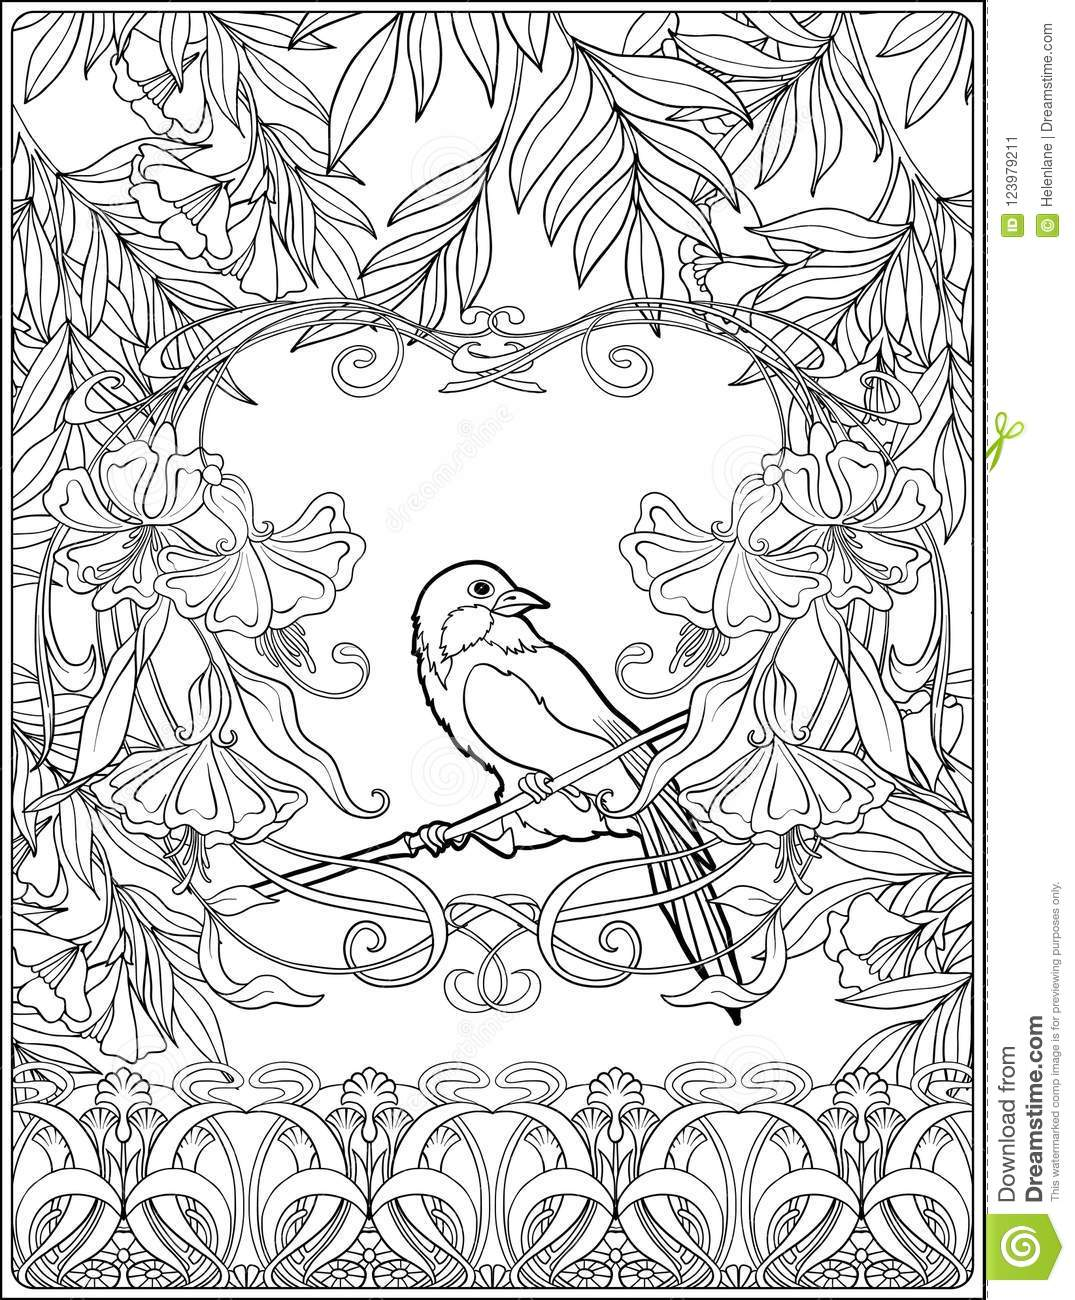 Poster, background with decorative flowers and carp fish in art nouveau  style, vintage, old, retro style. Outline coloring page for the adult  coloring book.